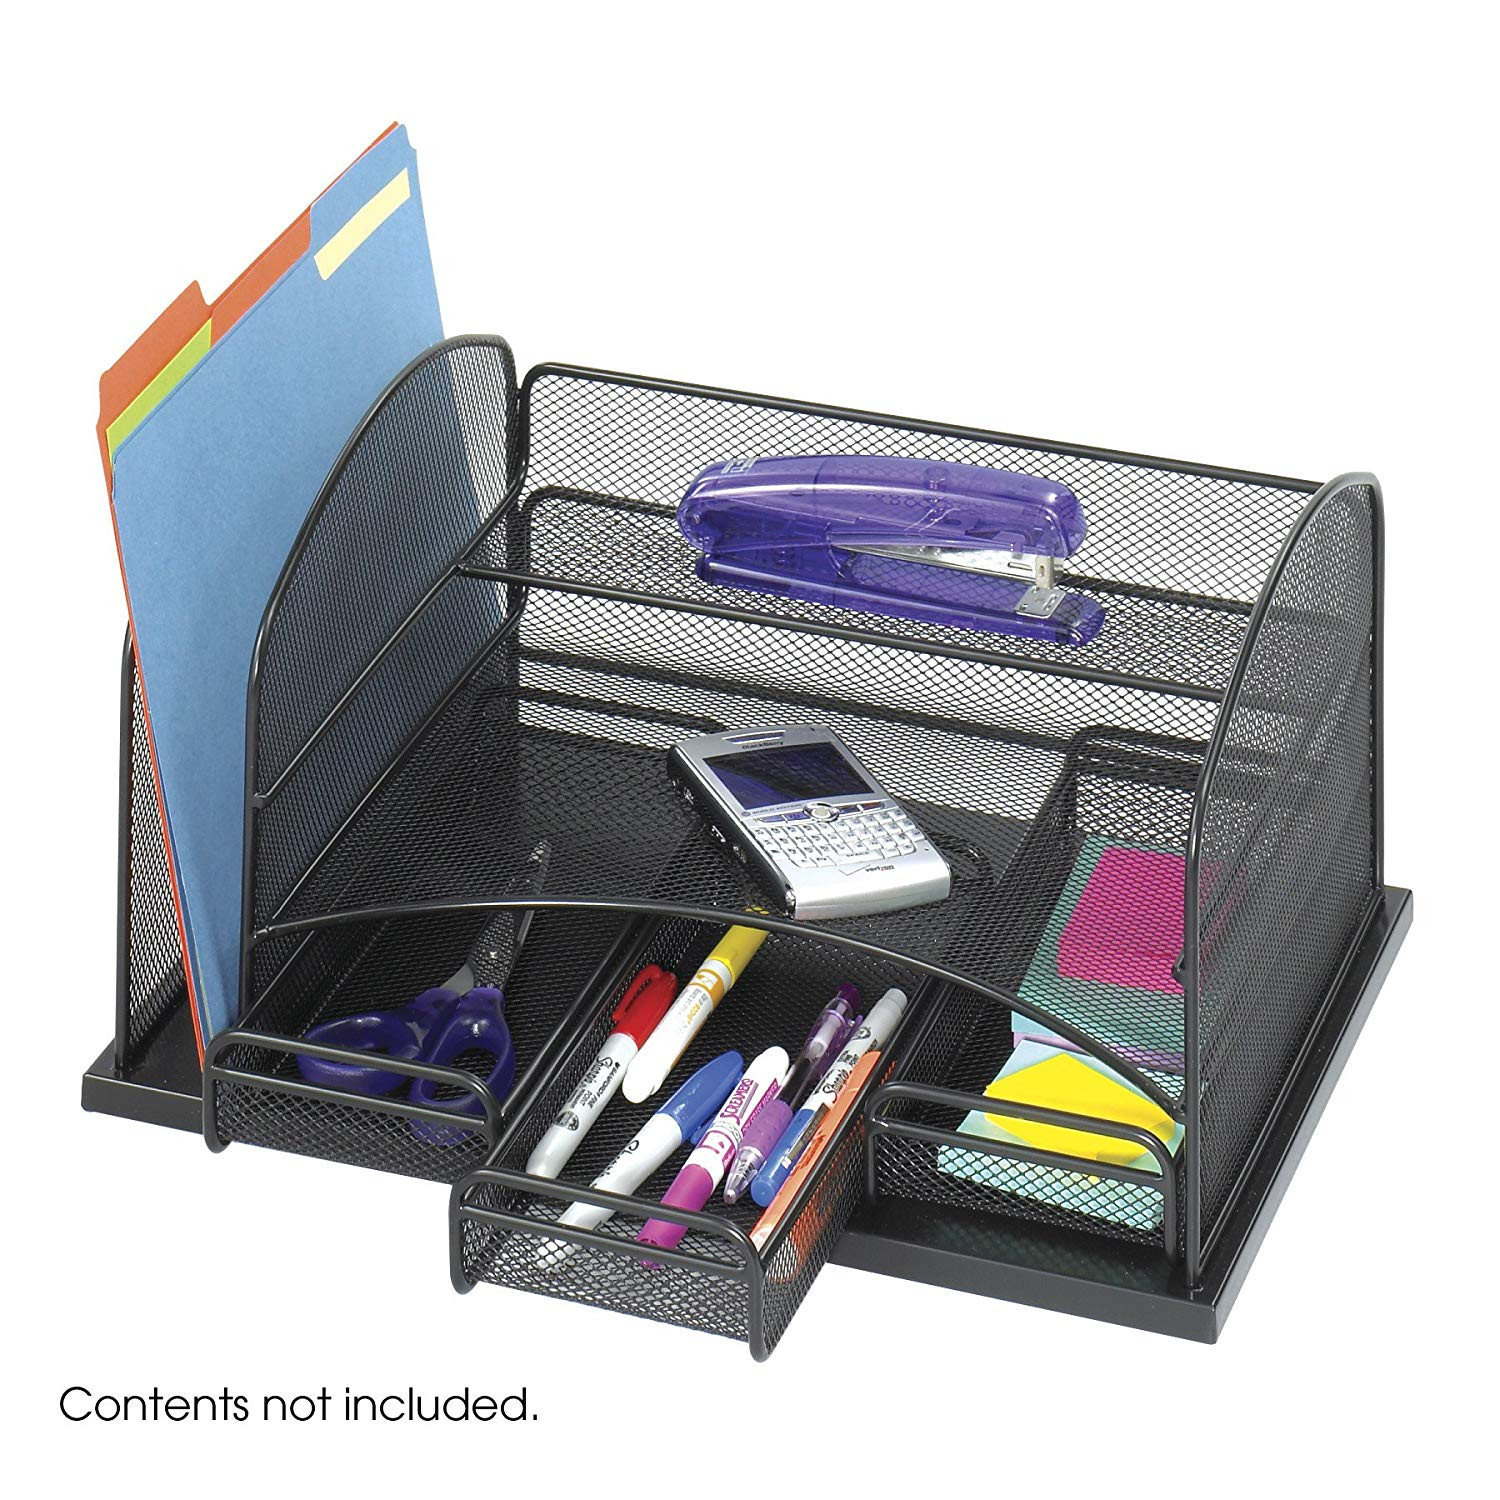 Desk Organizer Tray  Safco Products yx Mesh Desk Organizer with 3 Drawers